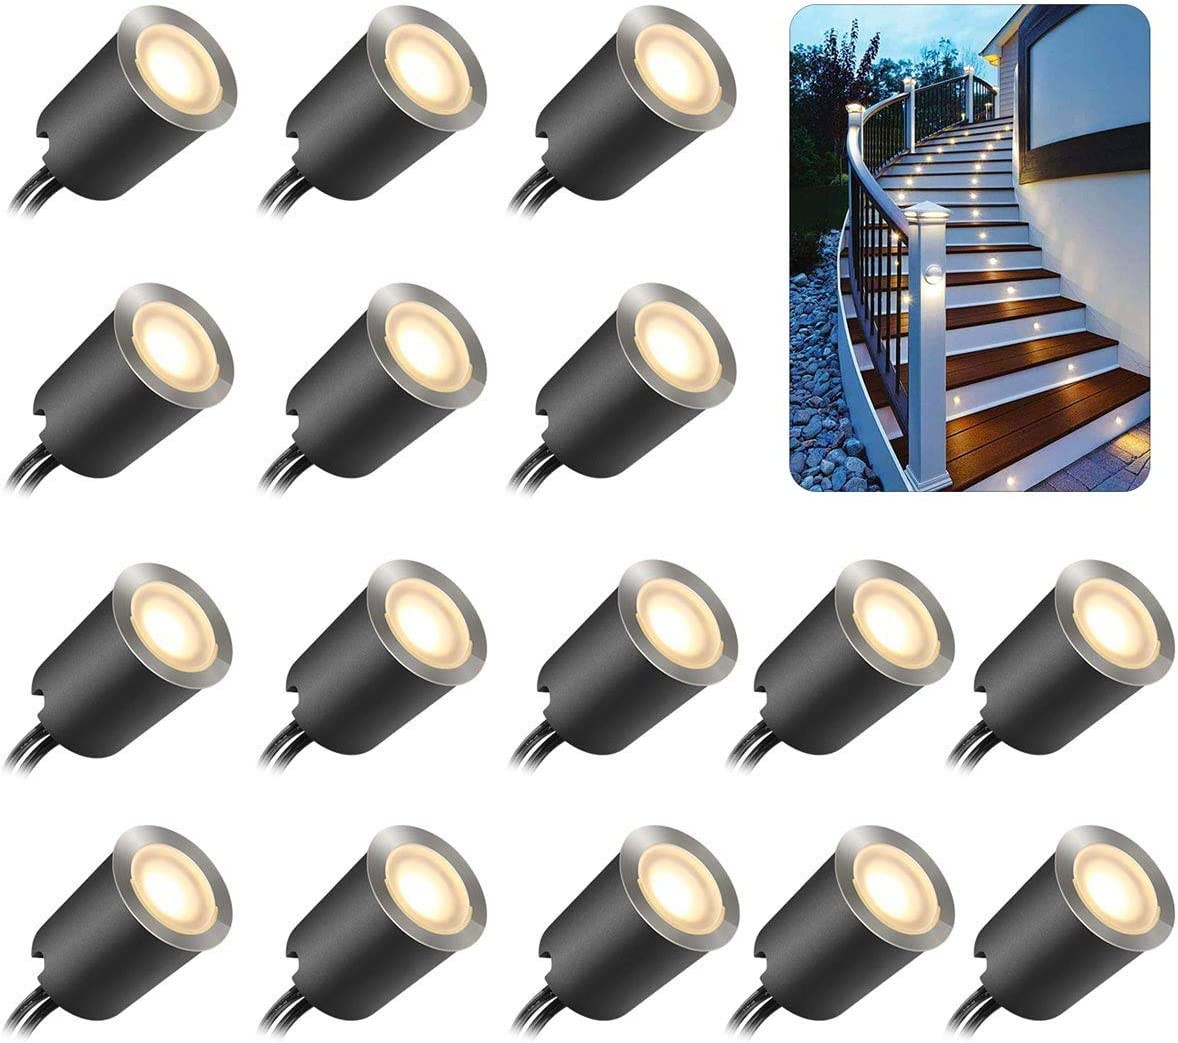 Recessed LED Deck Light Kits with Protecting Shell 32mm,SMY In Ground Outdoor LED Landscape Lighting IP67 Waterproof,12V Low Voltage for Garden,Yard Steps,Stair,Patio,Floor,Kitchen Decoration